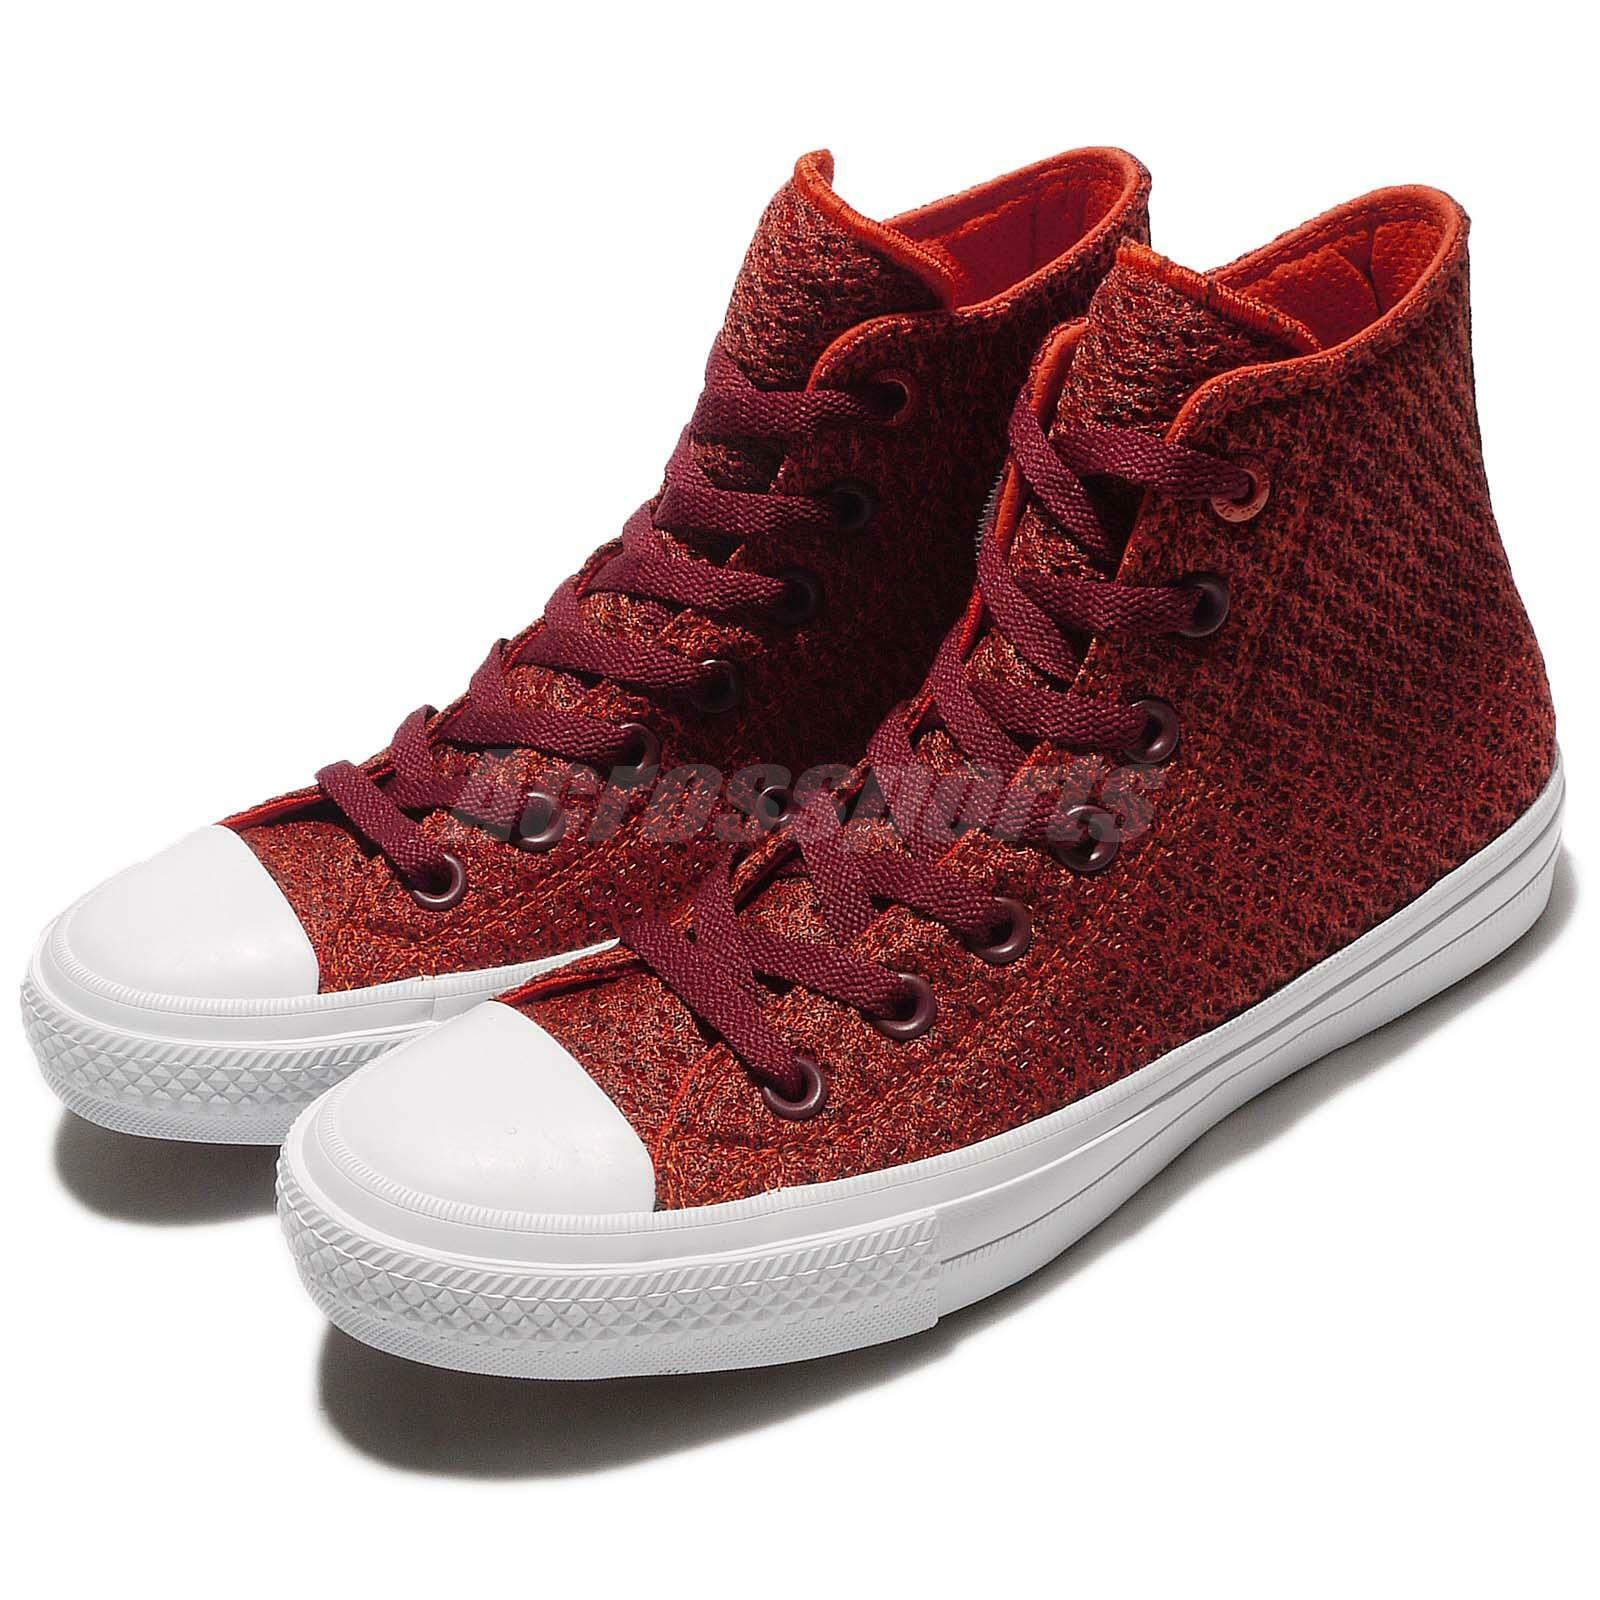 11086d01d77706 Converse Chuck Taylor All Star Star Star II Spacer Mesh Red Mens Casual  Shoes 154019C 19adb8